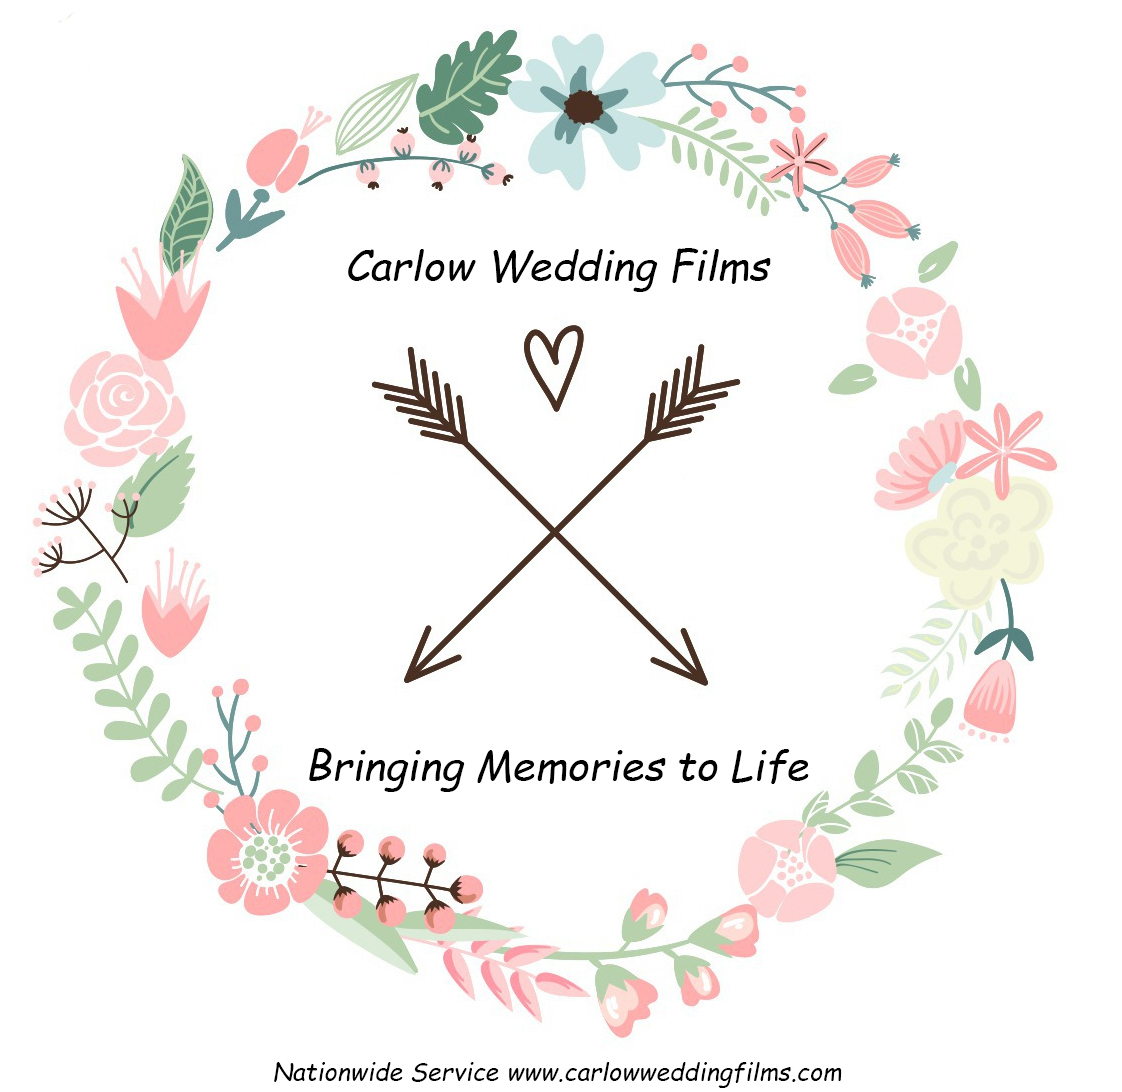 Carlow Wedding Films